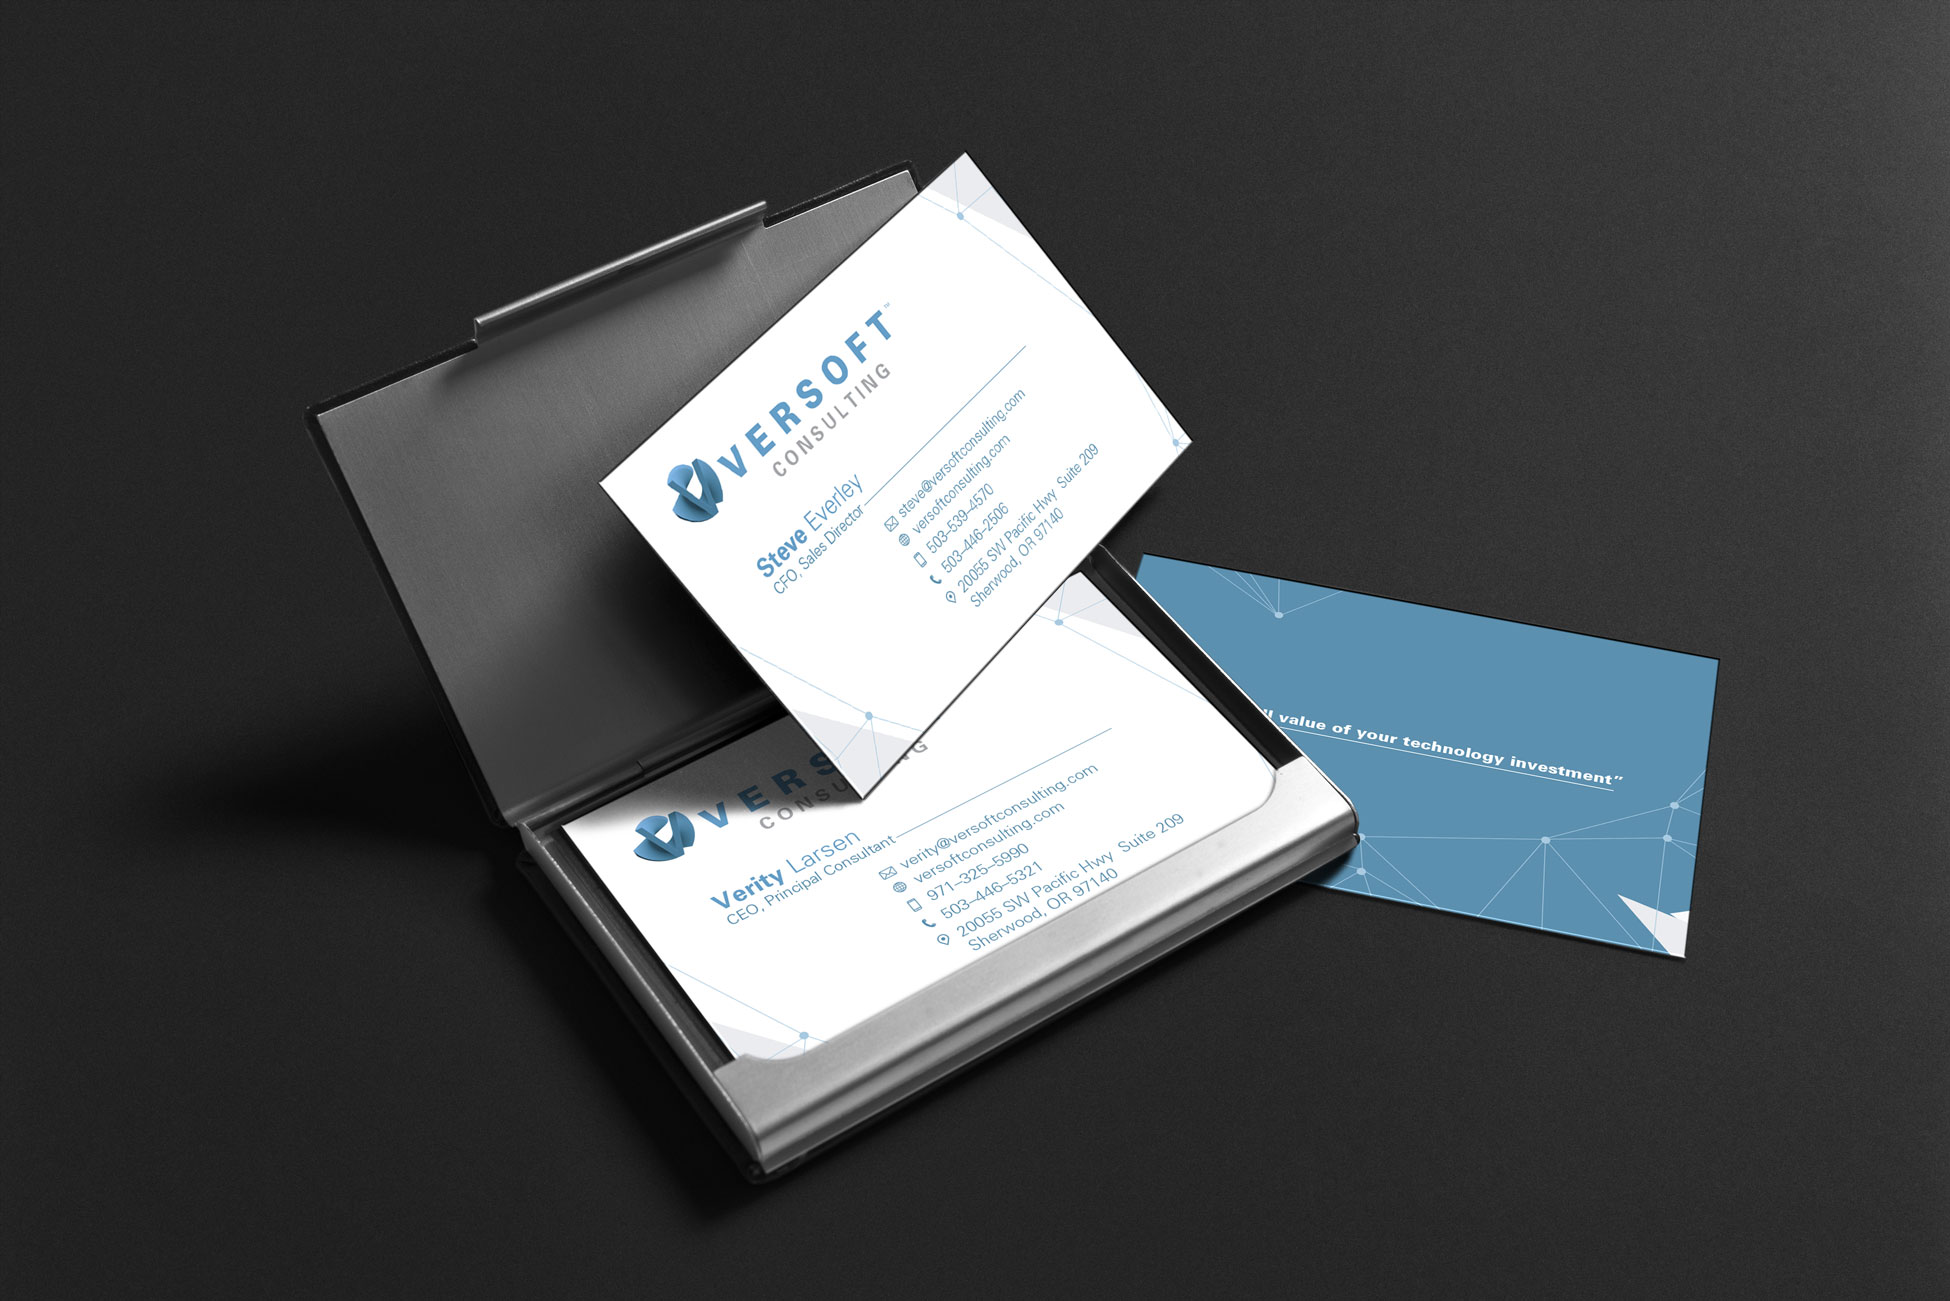 Versoft Consulting Business Cards deigned by Graphicsbyte Creative